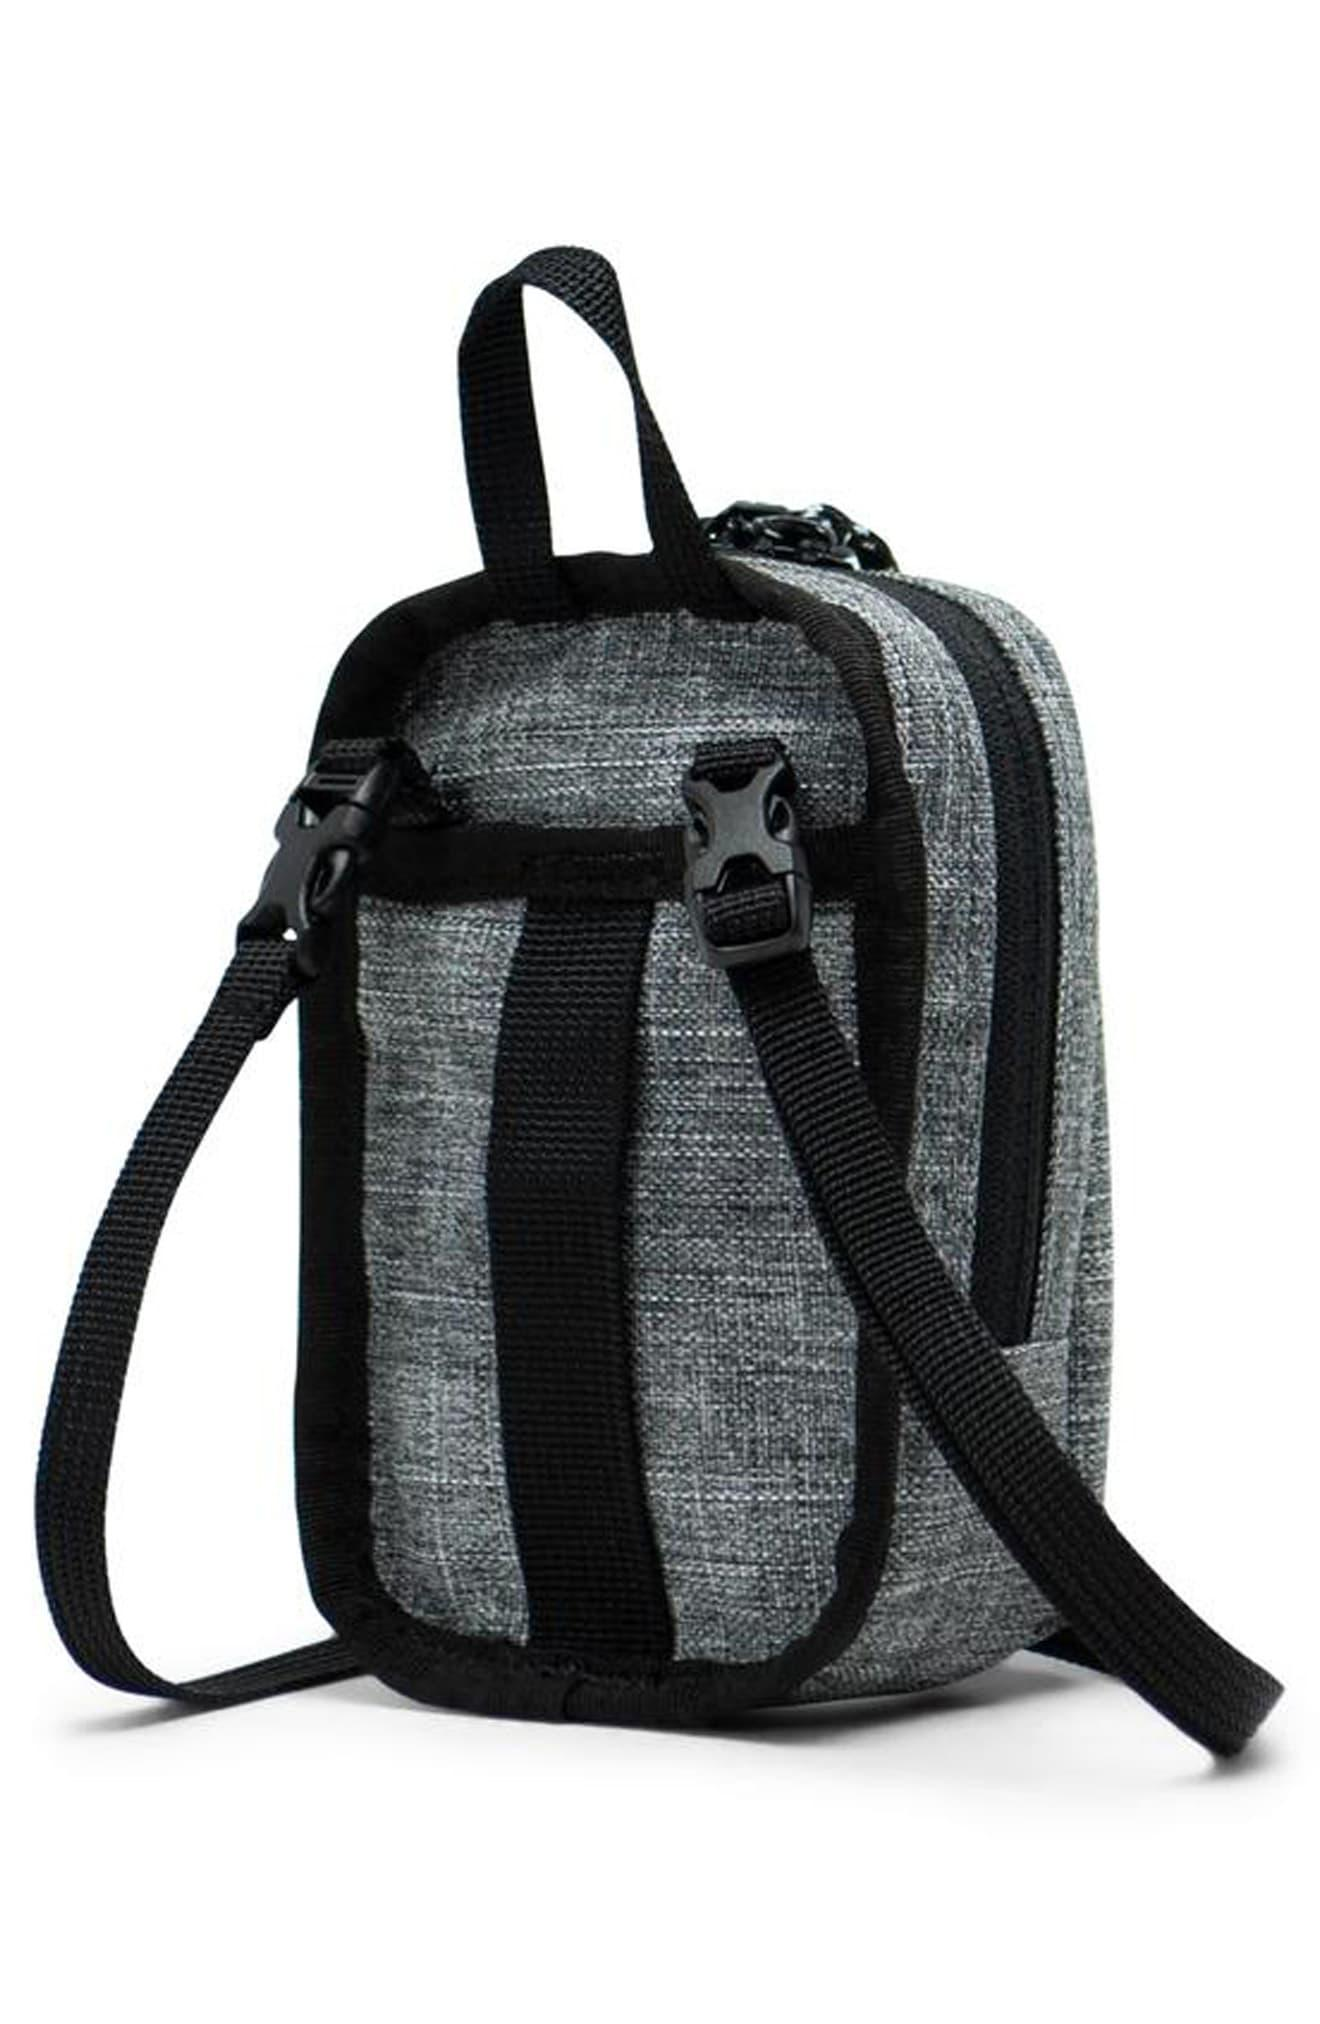 e45275a3ebdf Herschel Supply Co. - Black Small Form Shoulder Bag for Men - Lyst. View  fullscreen